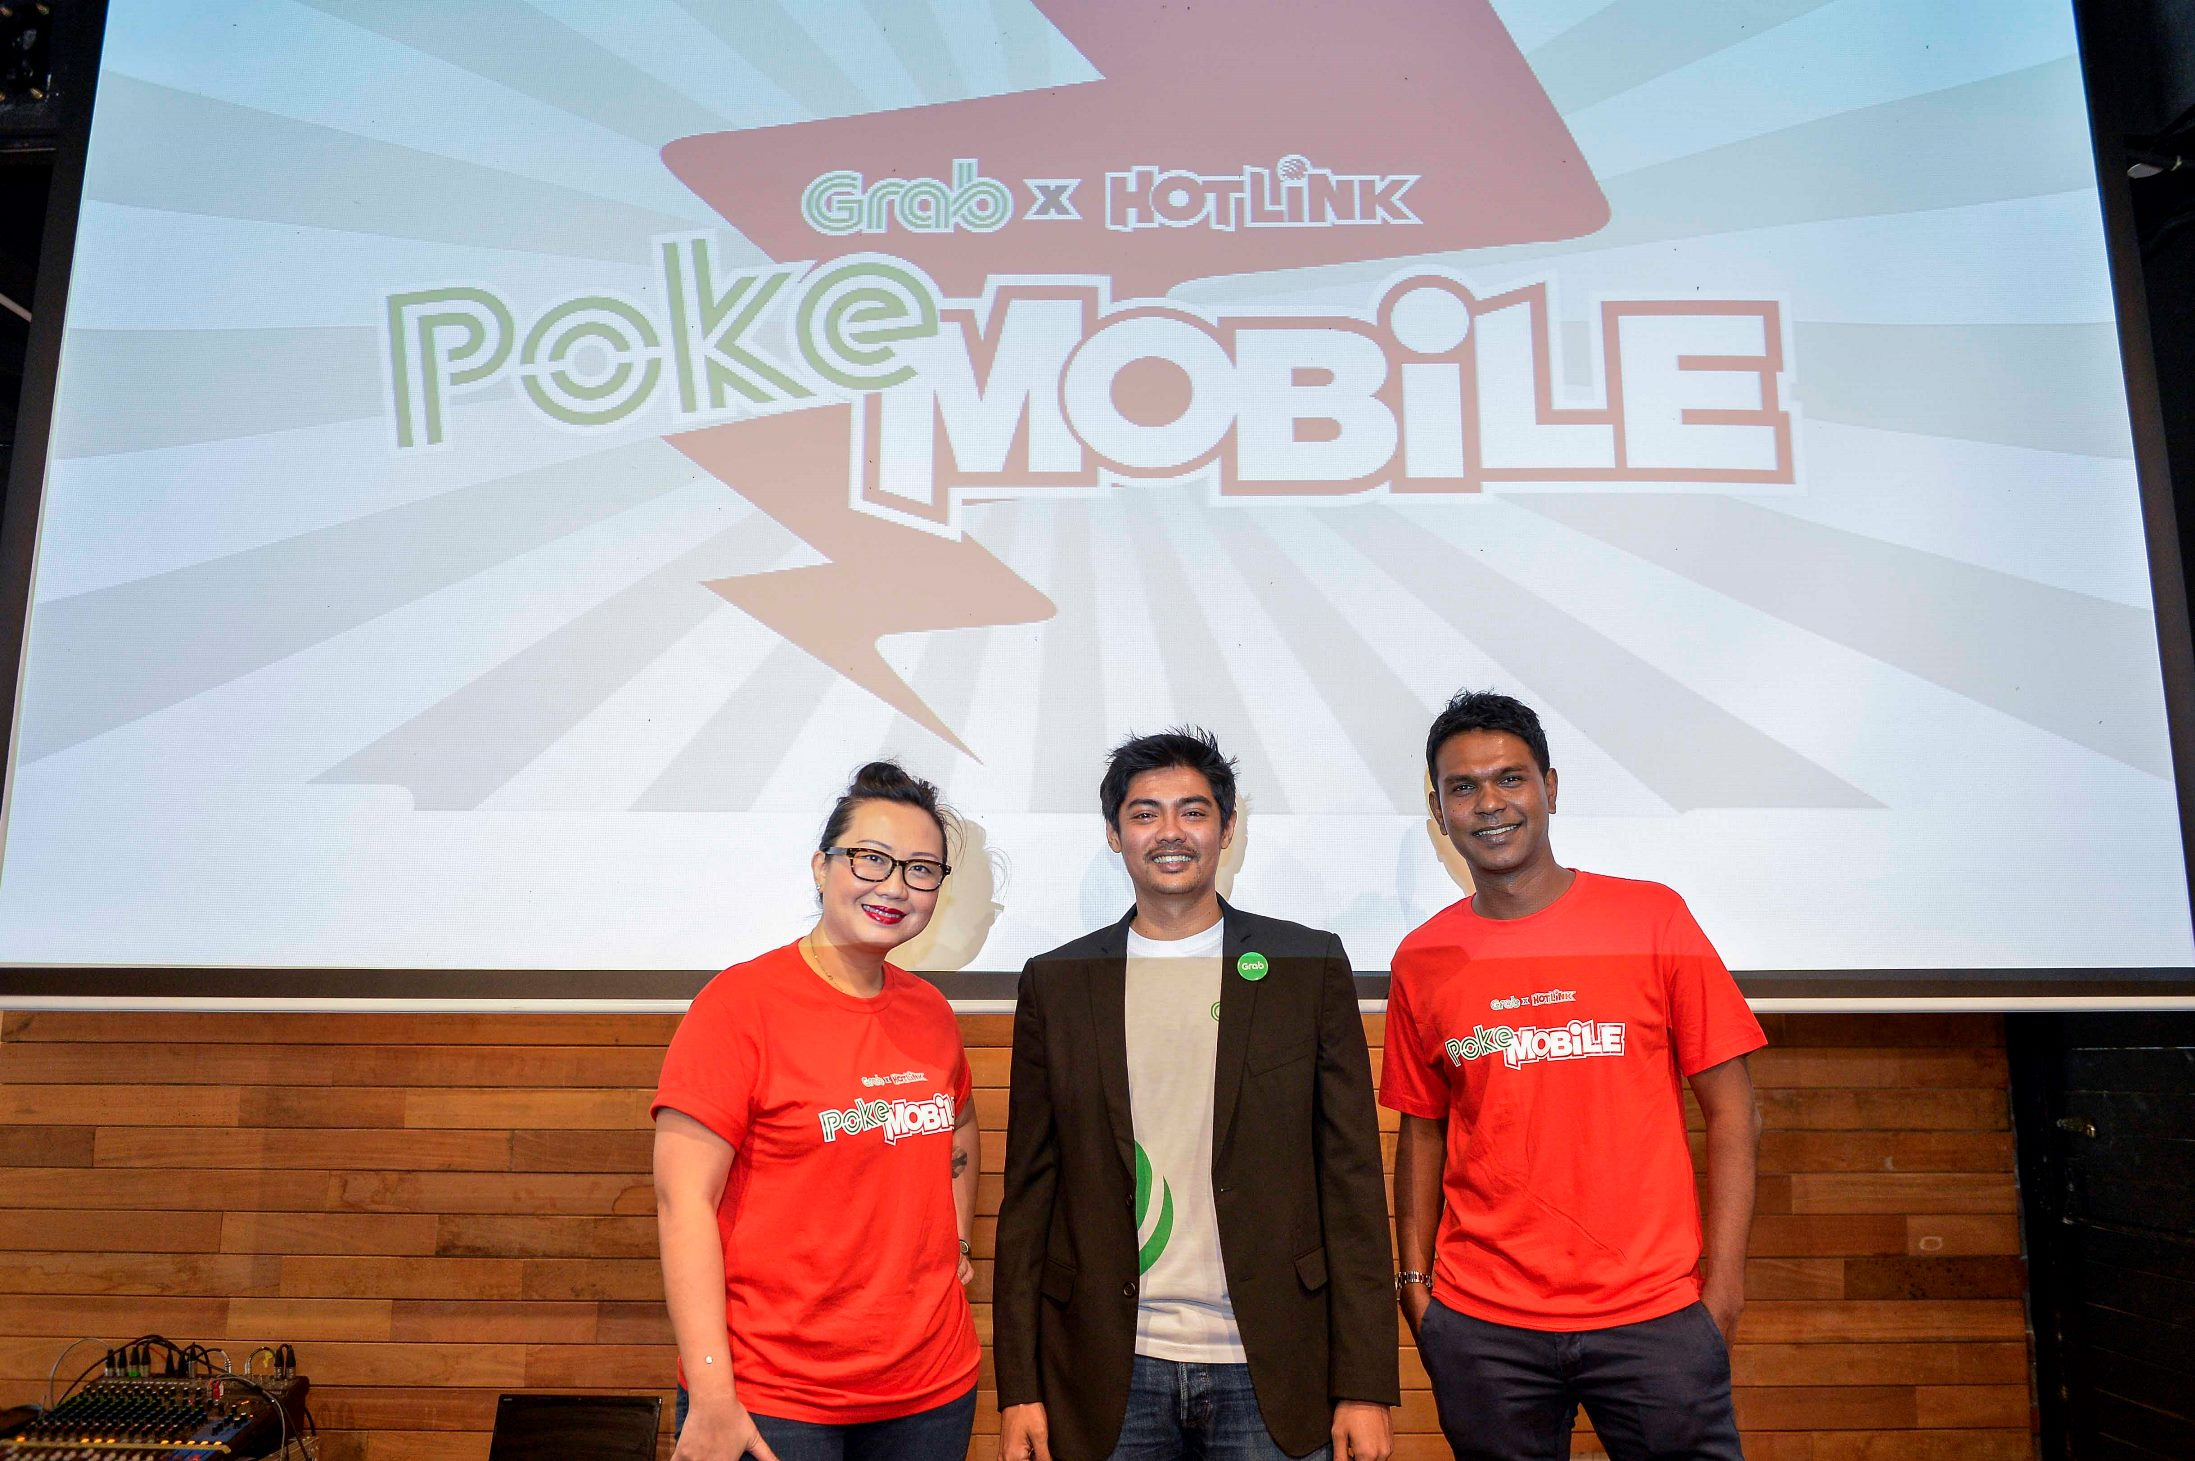 (L-R) Maybel Chan, Maxis' Head of Content & Engagement, Jaygan Fu, Grab Malaysia's Country Manager and Navin Manian, Maxis' Head of Prepaid, at the official launch of the Grab-Hotlink PokeMobile on 2 August.